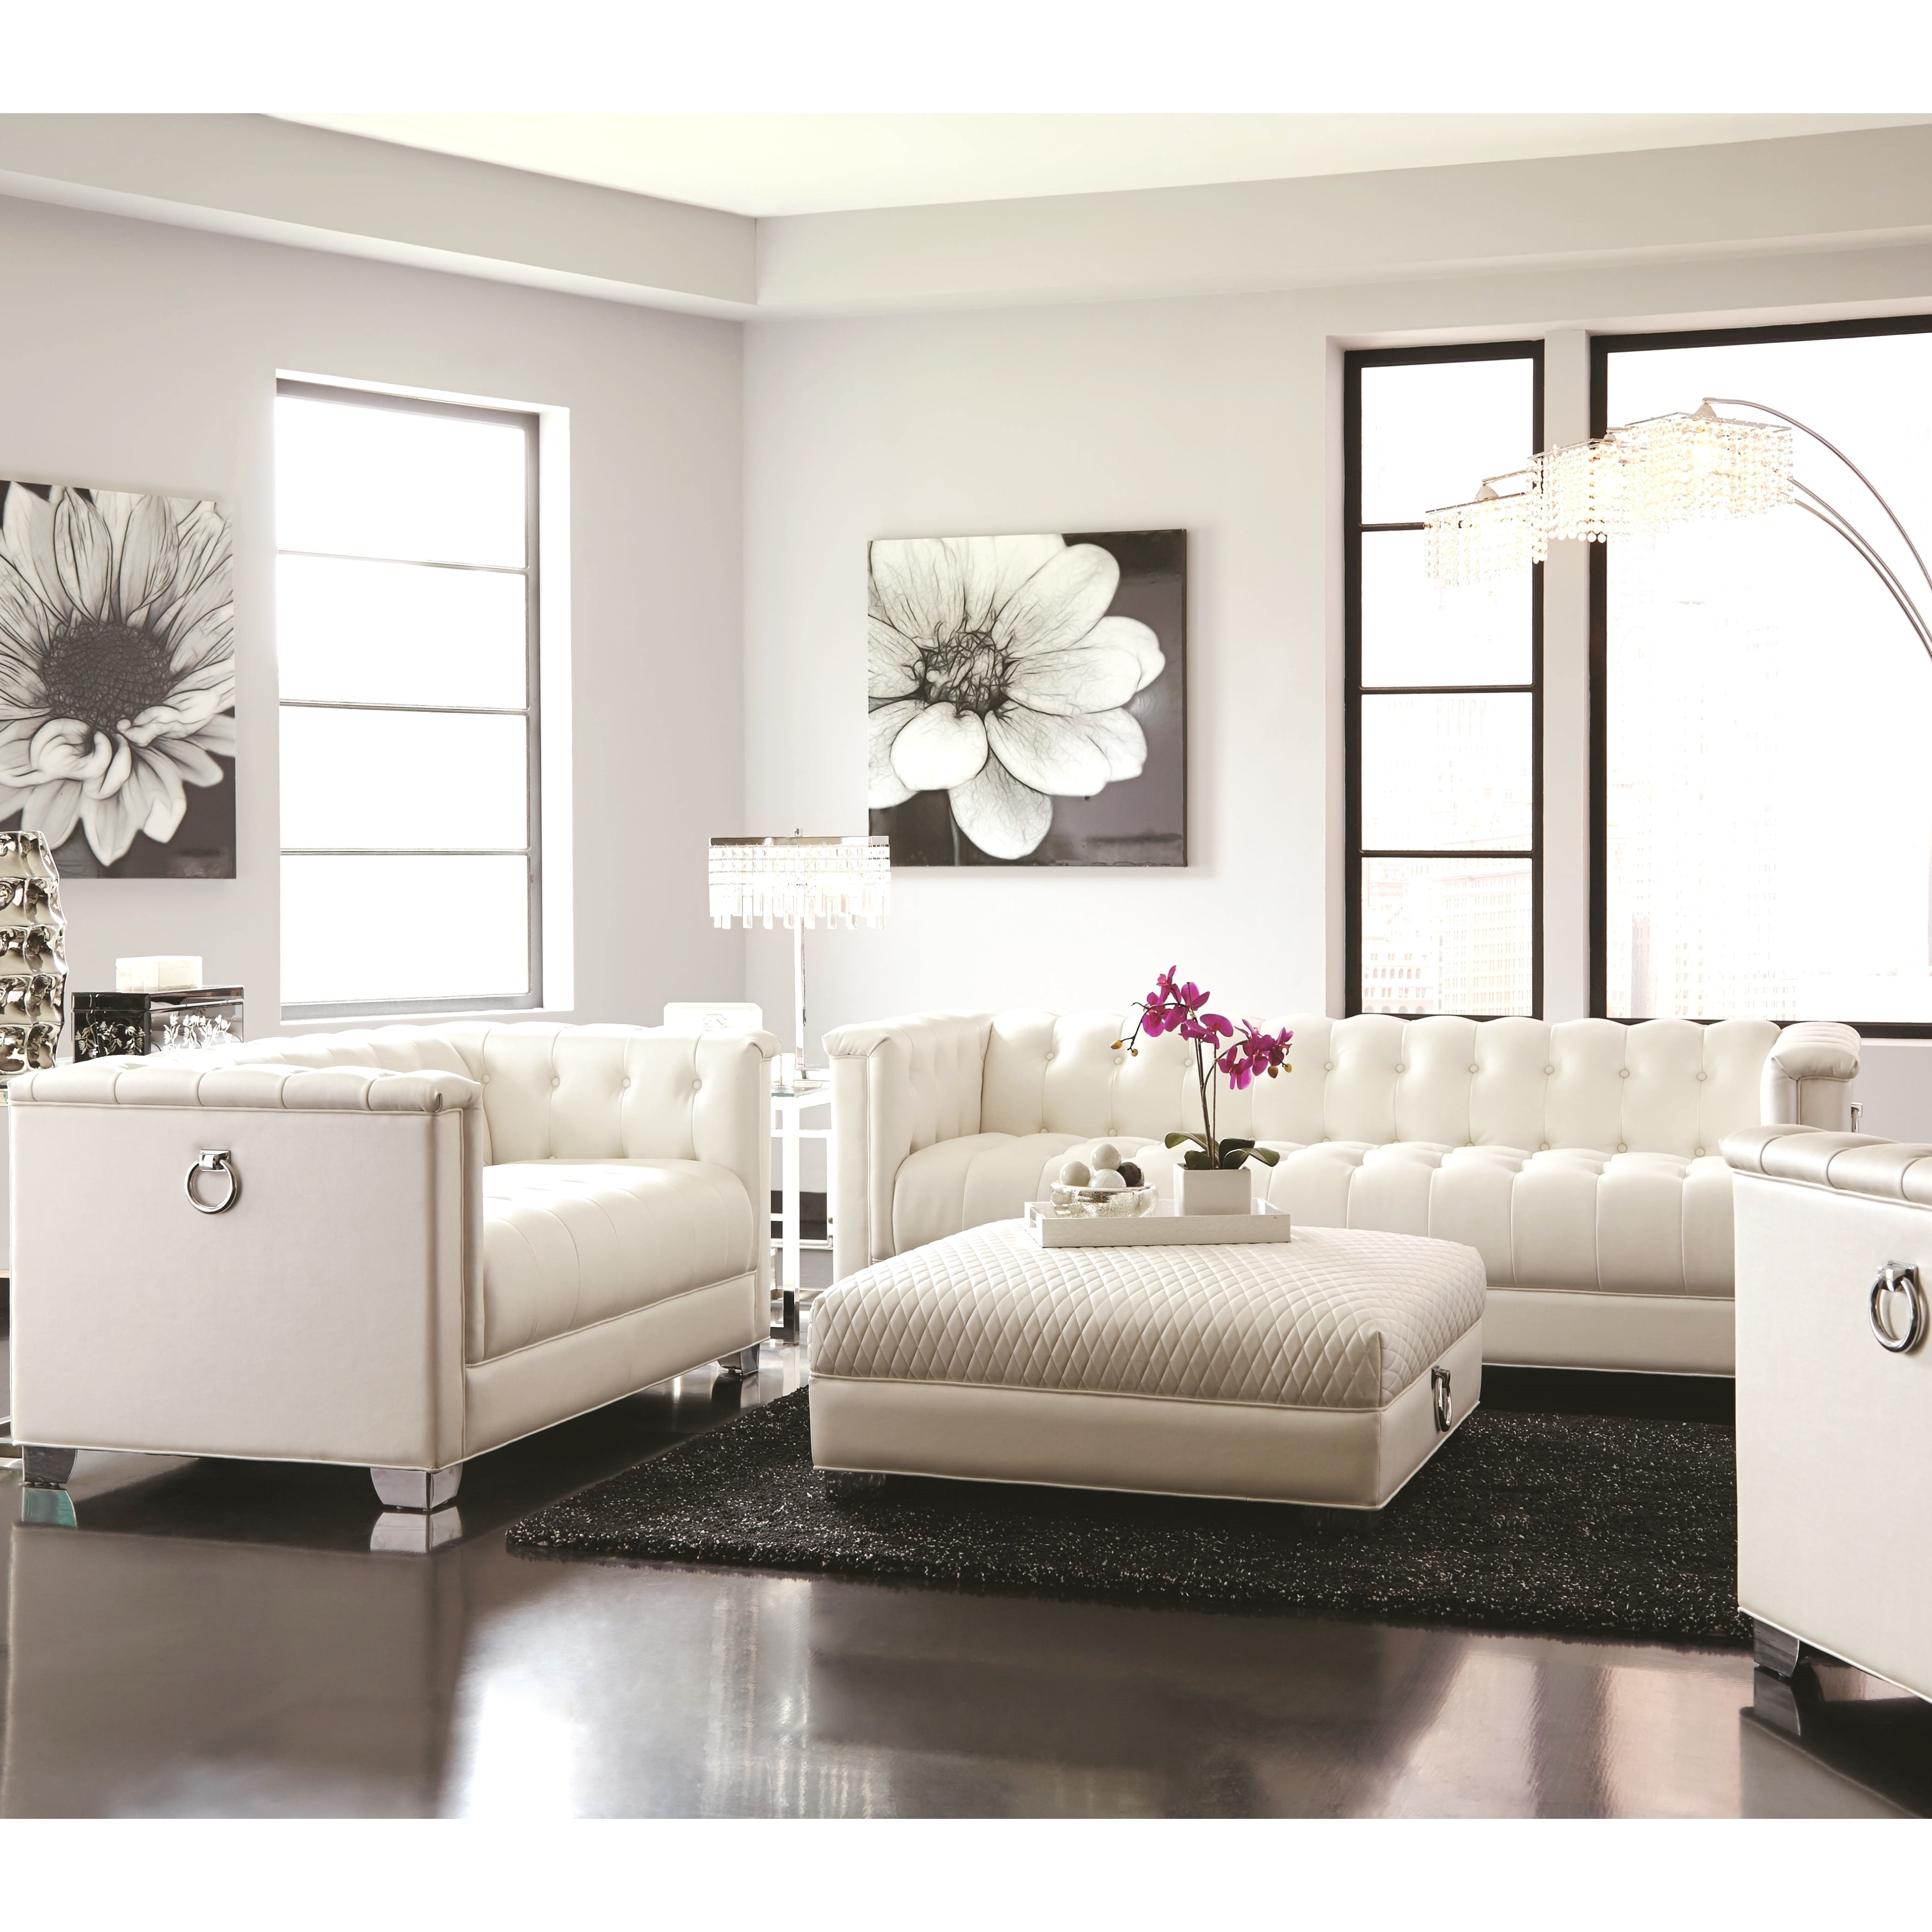 Sofa For Small Living Room Classic Mid Century Button Tufted Design Living Room Sofa Collection With Chrome Doorknocker Handles